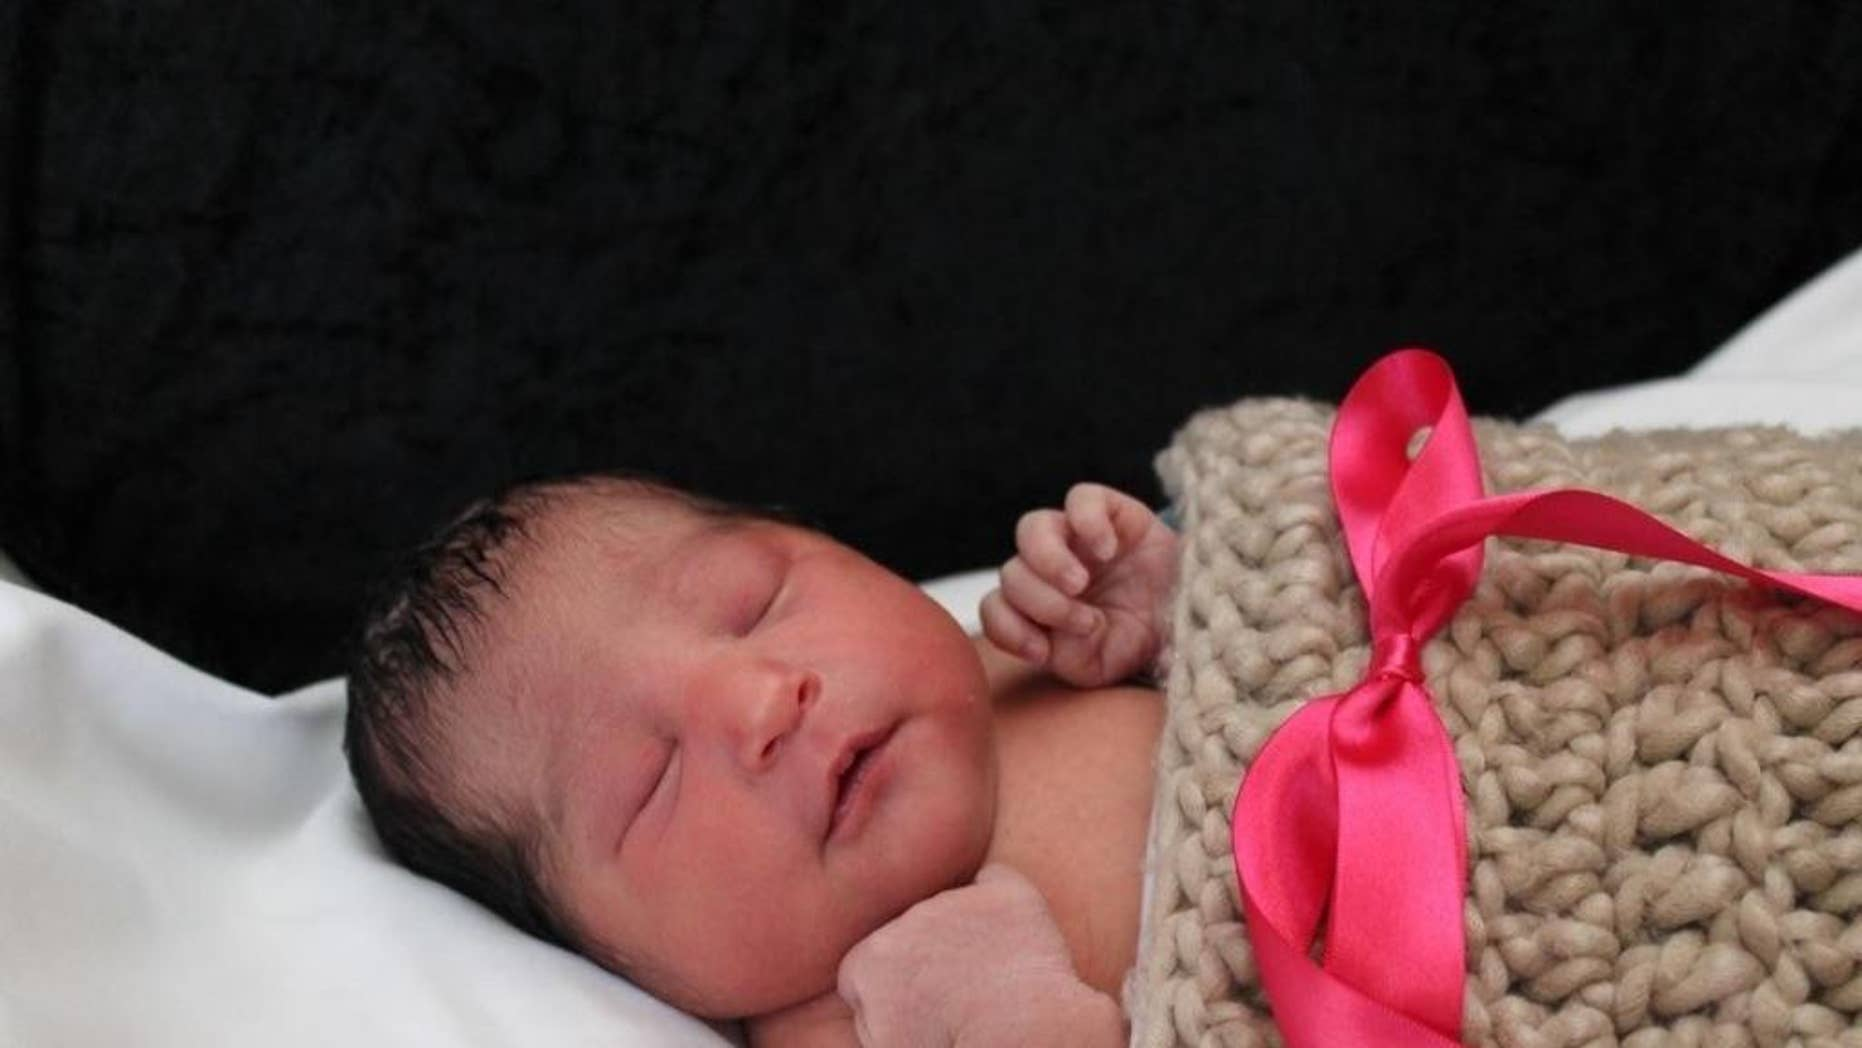 "This photo provided by the Wichita Police shows Sofia Victoria Gonzalez Abarca, a missing week-old baby in Wichita, Kan.   Authorities are searching for the missing week-old baby after her mother was found fatally shot in Wichita.  A relative found the woman dead Thursday, Nov. 17, 2016,  in her apartment. Sgt. Nikki Woodrow says the woman's daughter, Sofia Victoria Gonzalez Abarca, is ""considered missing and endangered.""   (Wichita Police via AP)"